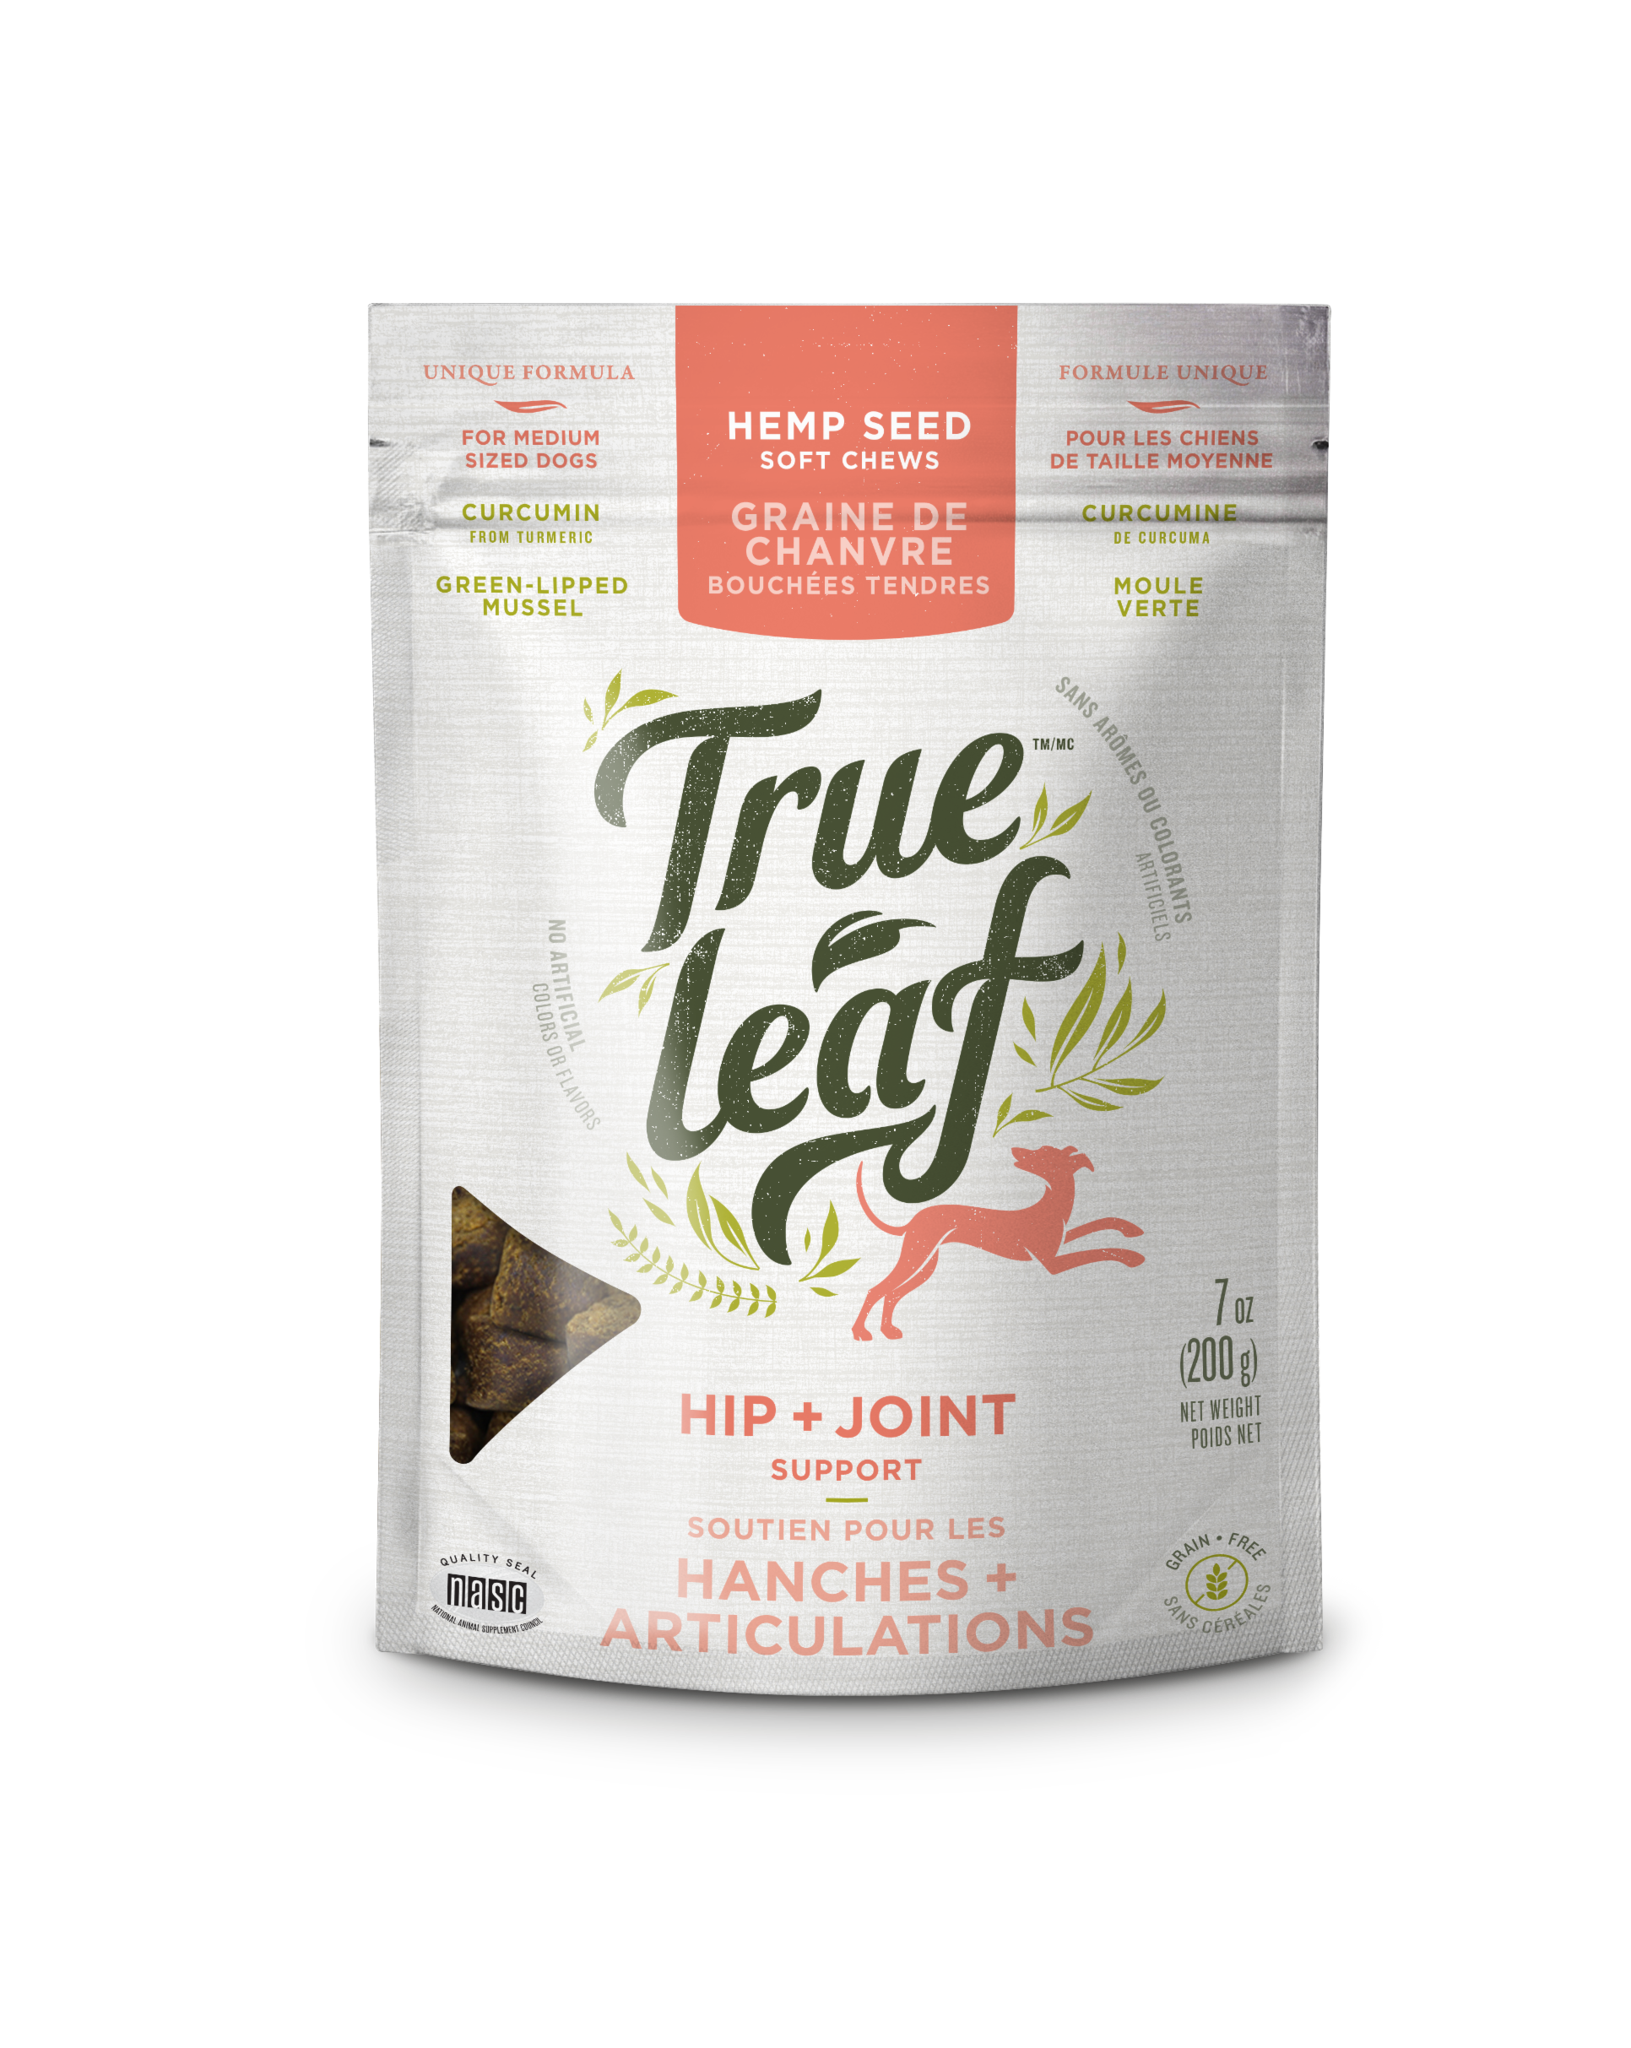 True Leaf Hip + Joint Support Chews for Medium Dogs, 7-oz bag